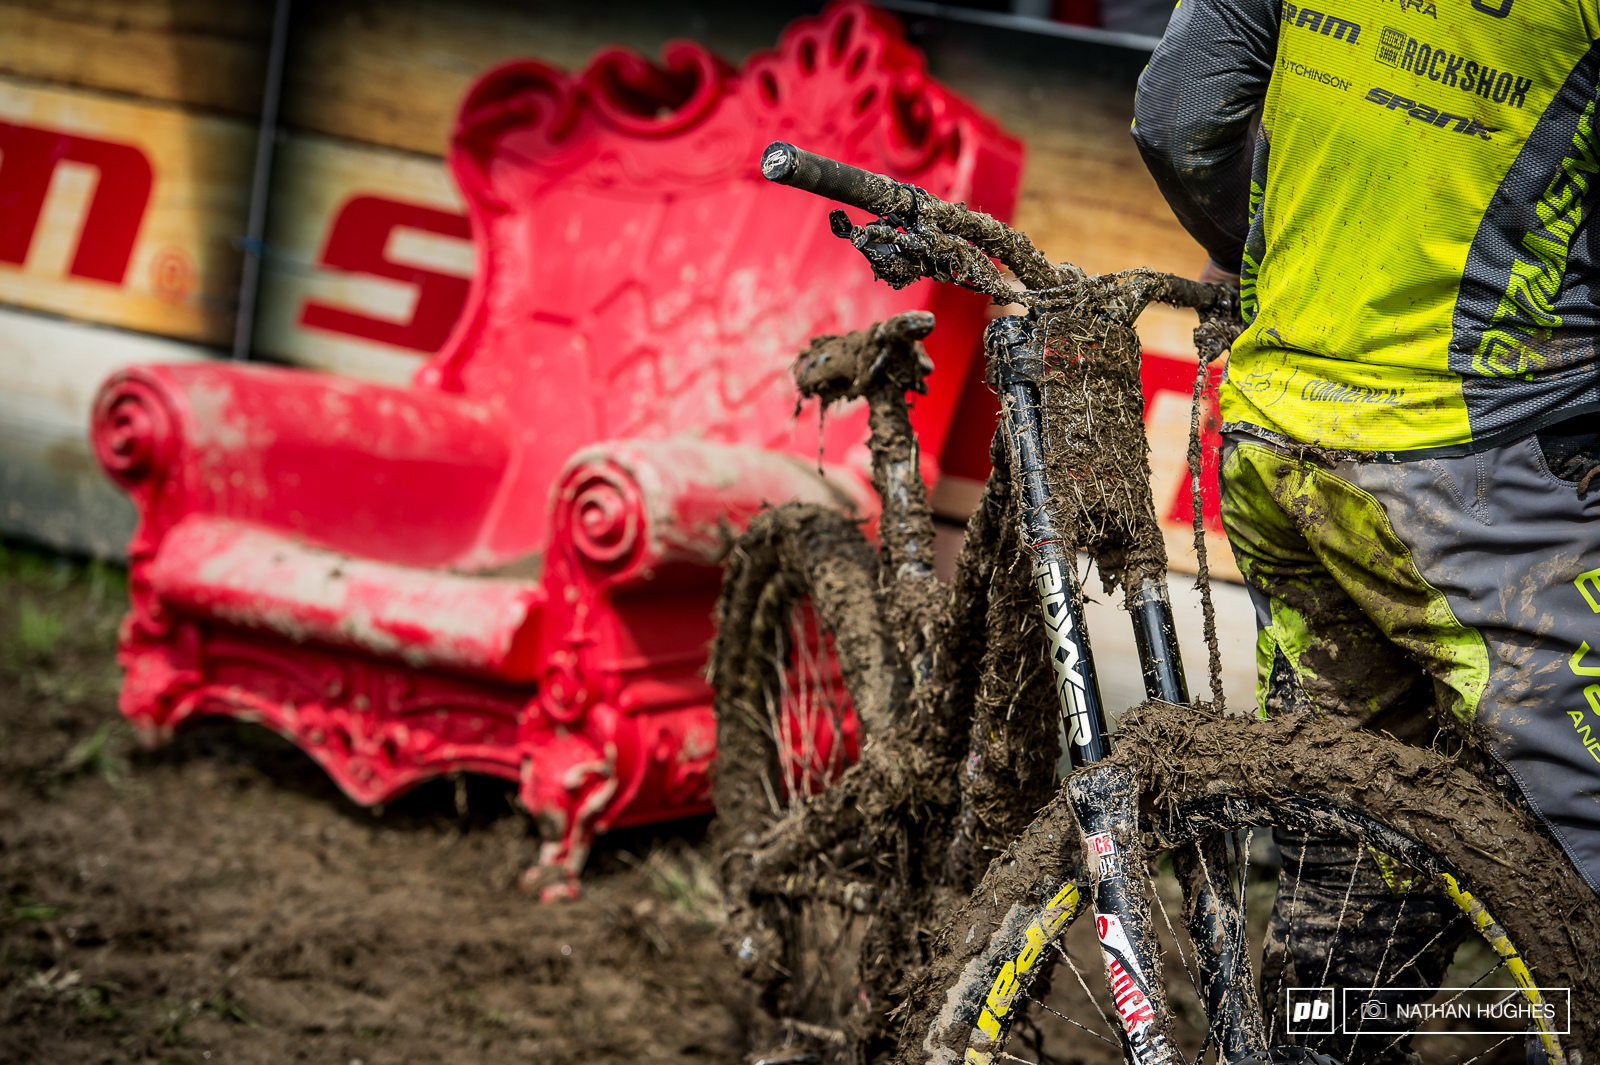 Thirion s race machine tired and muddied from battle in front of the hotseat.